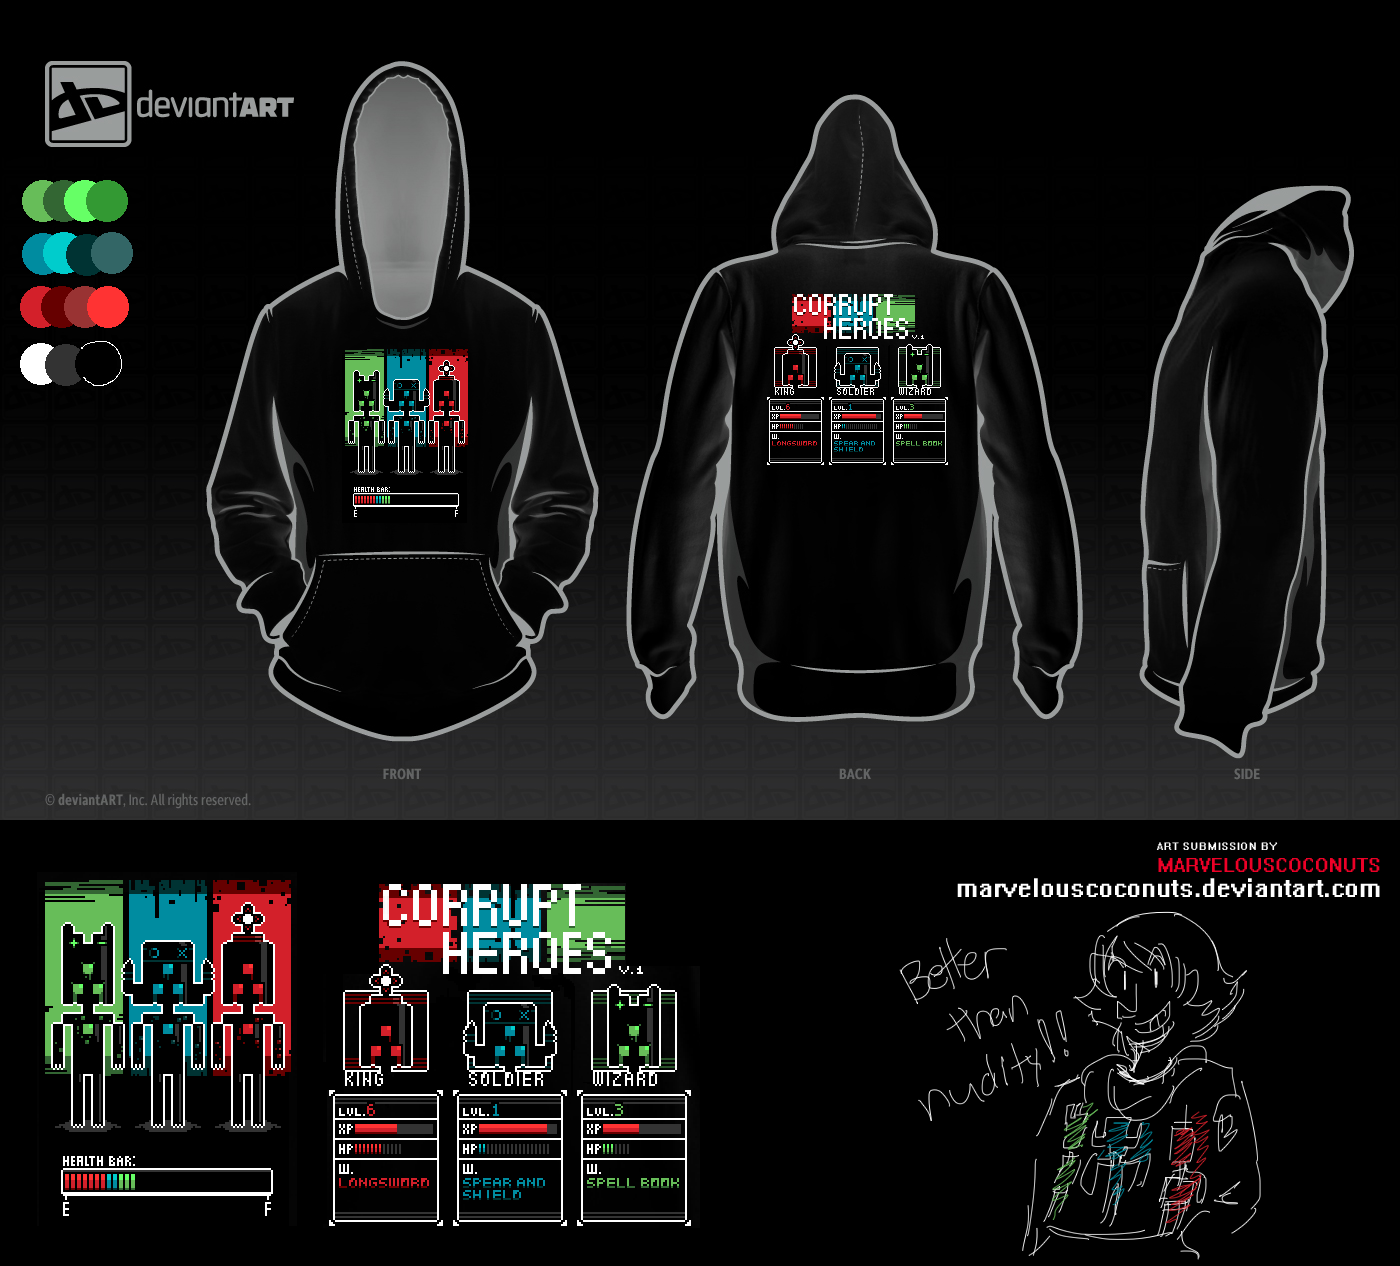 8-Bit Shirt Challenge - CORRUPT HEROES by MarvelousCoconuts